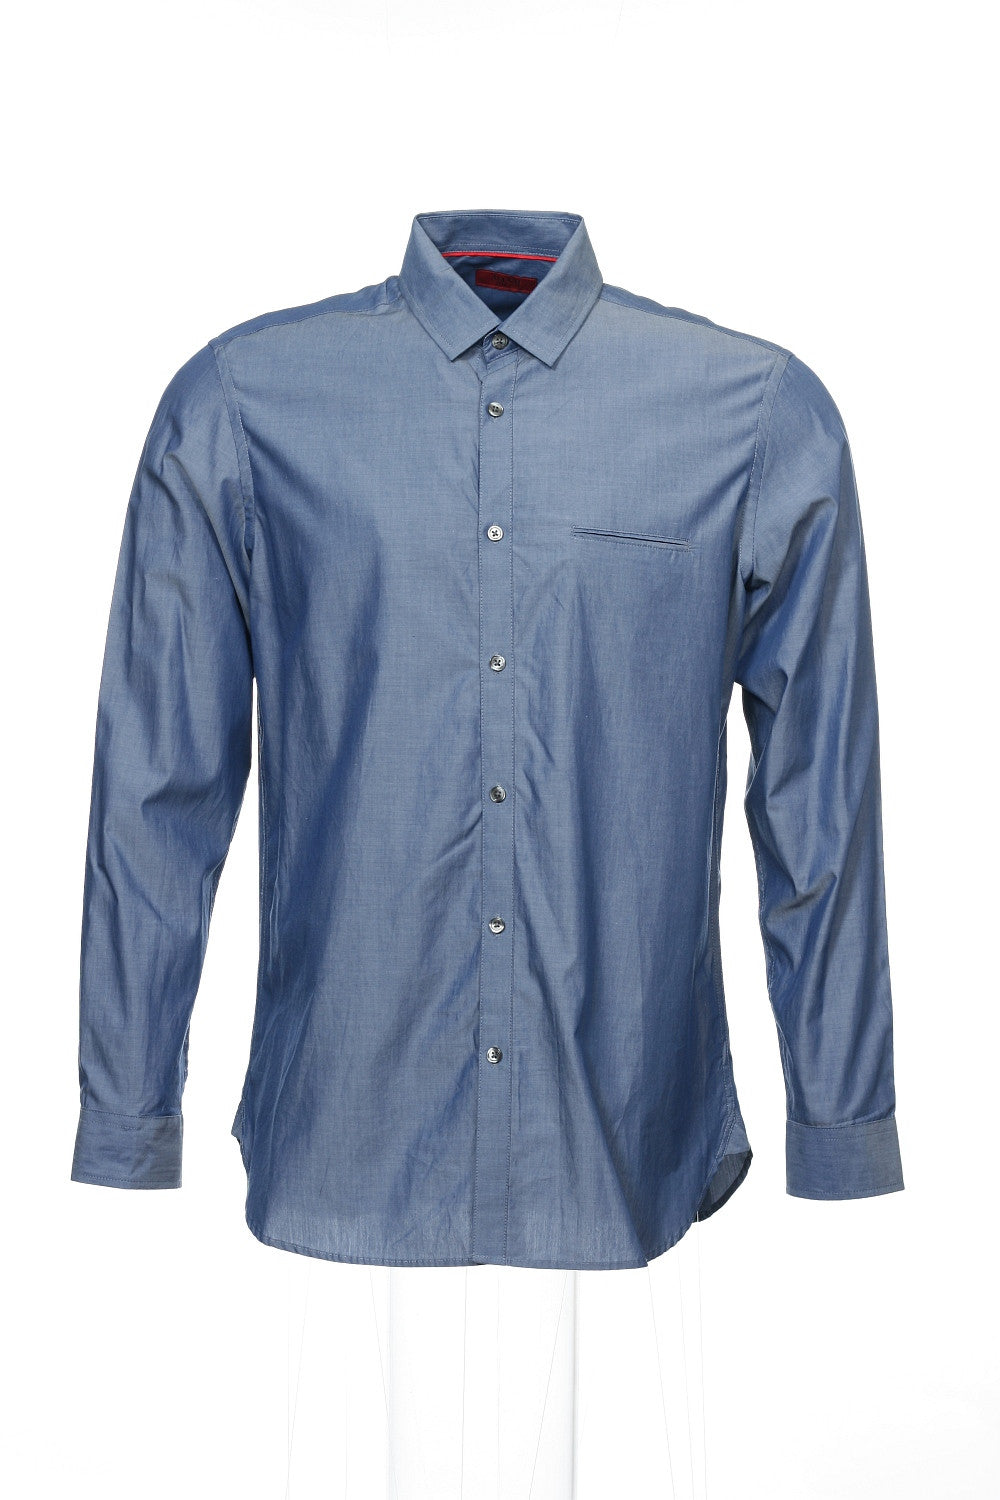 Alfani Mens Blue Herringbone Button Down Shirt